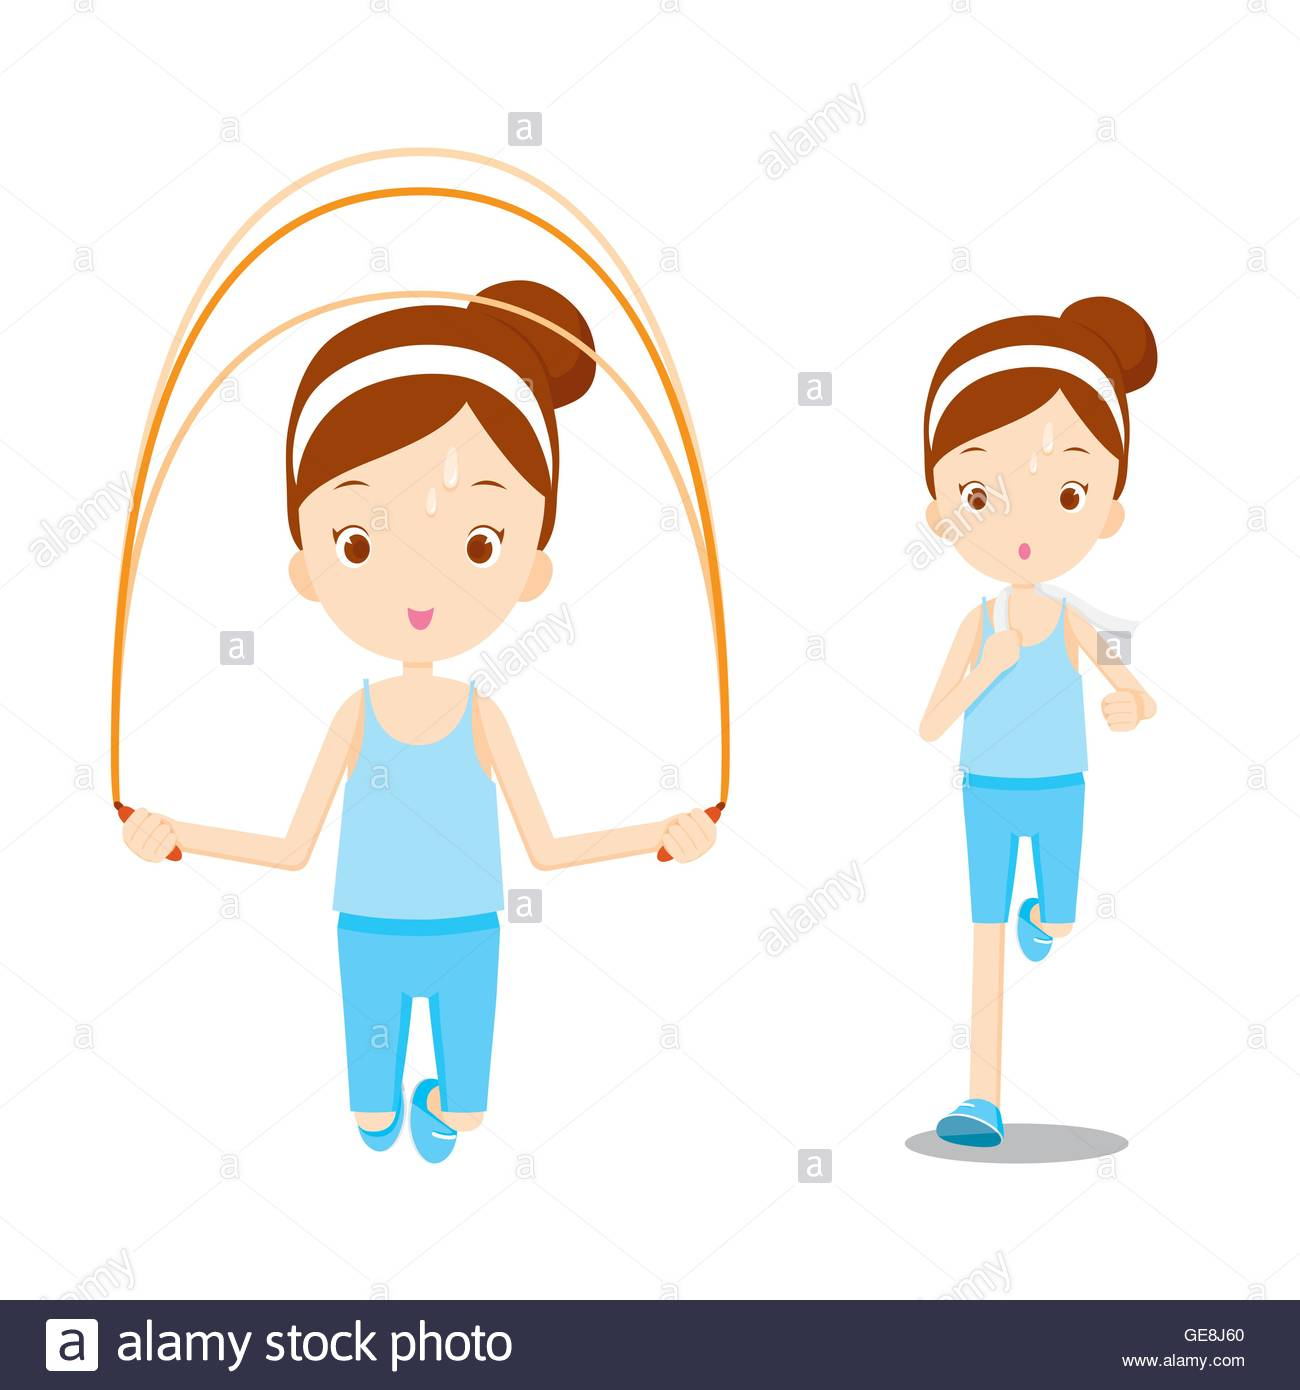 1300x1390 Cute Girl Exercising For Good Wellness, Healthy, Nutrition